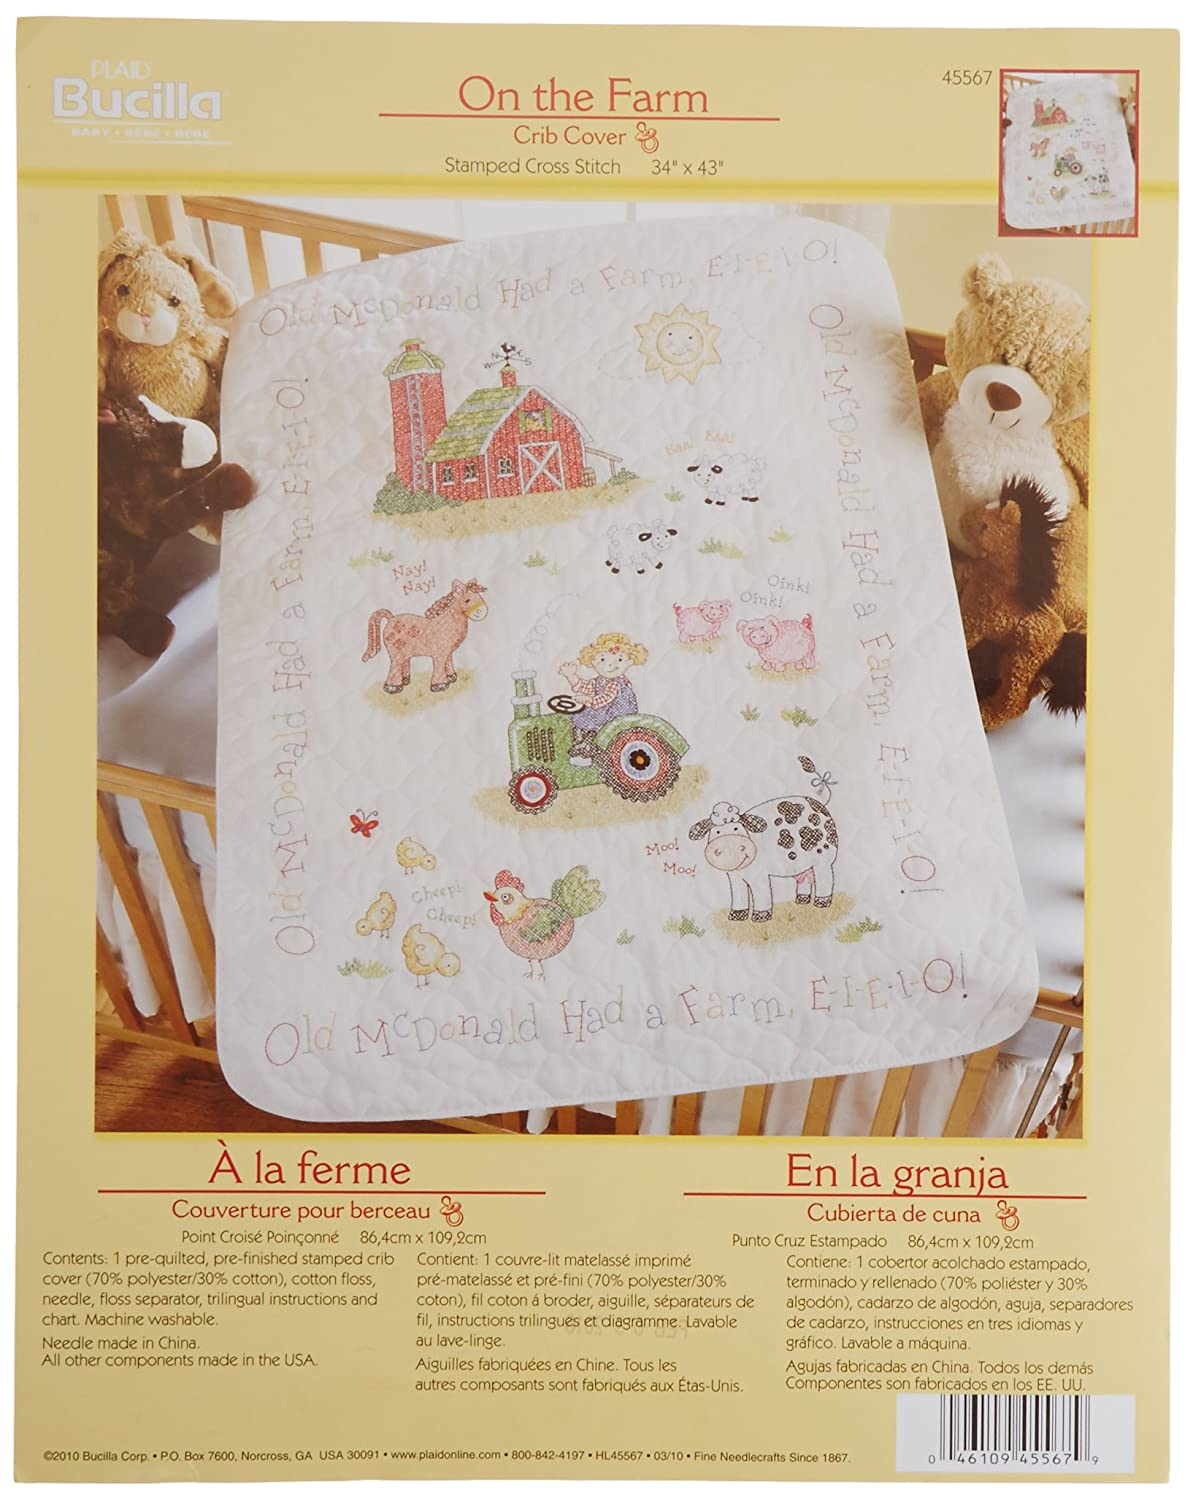 Bucilla Stamped Cross Stitch Crib Cover Kit, 34 by 43-Inch, 45567 On The Farm Plaid Inc dimensions needlecrafts tobin stitchery